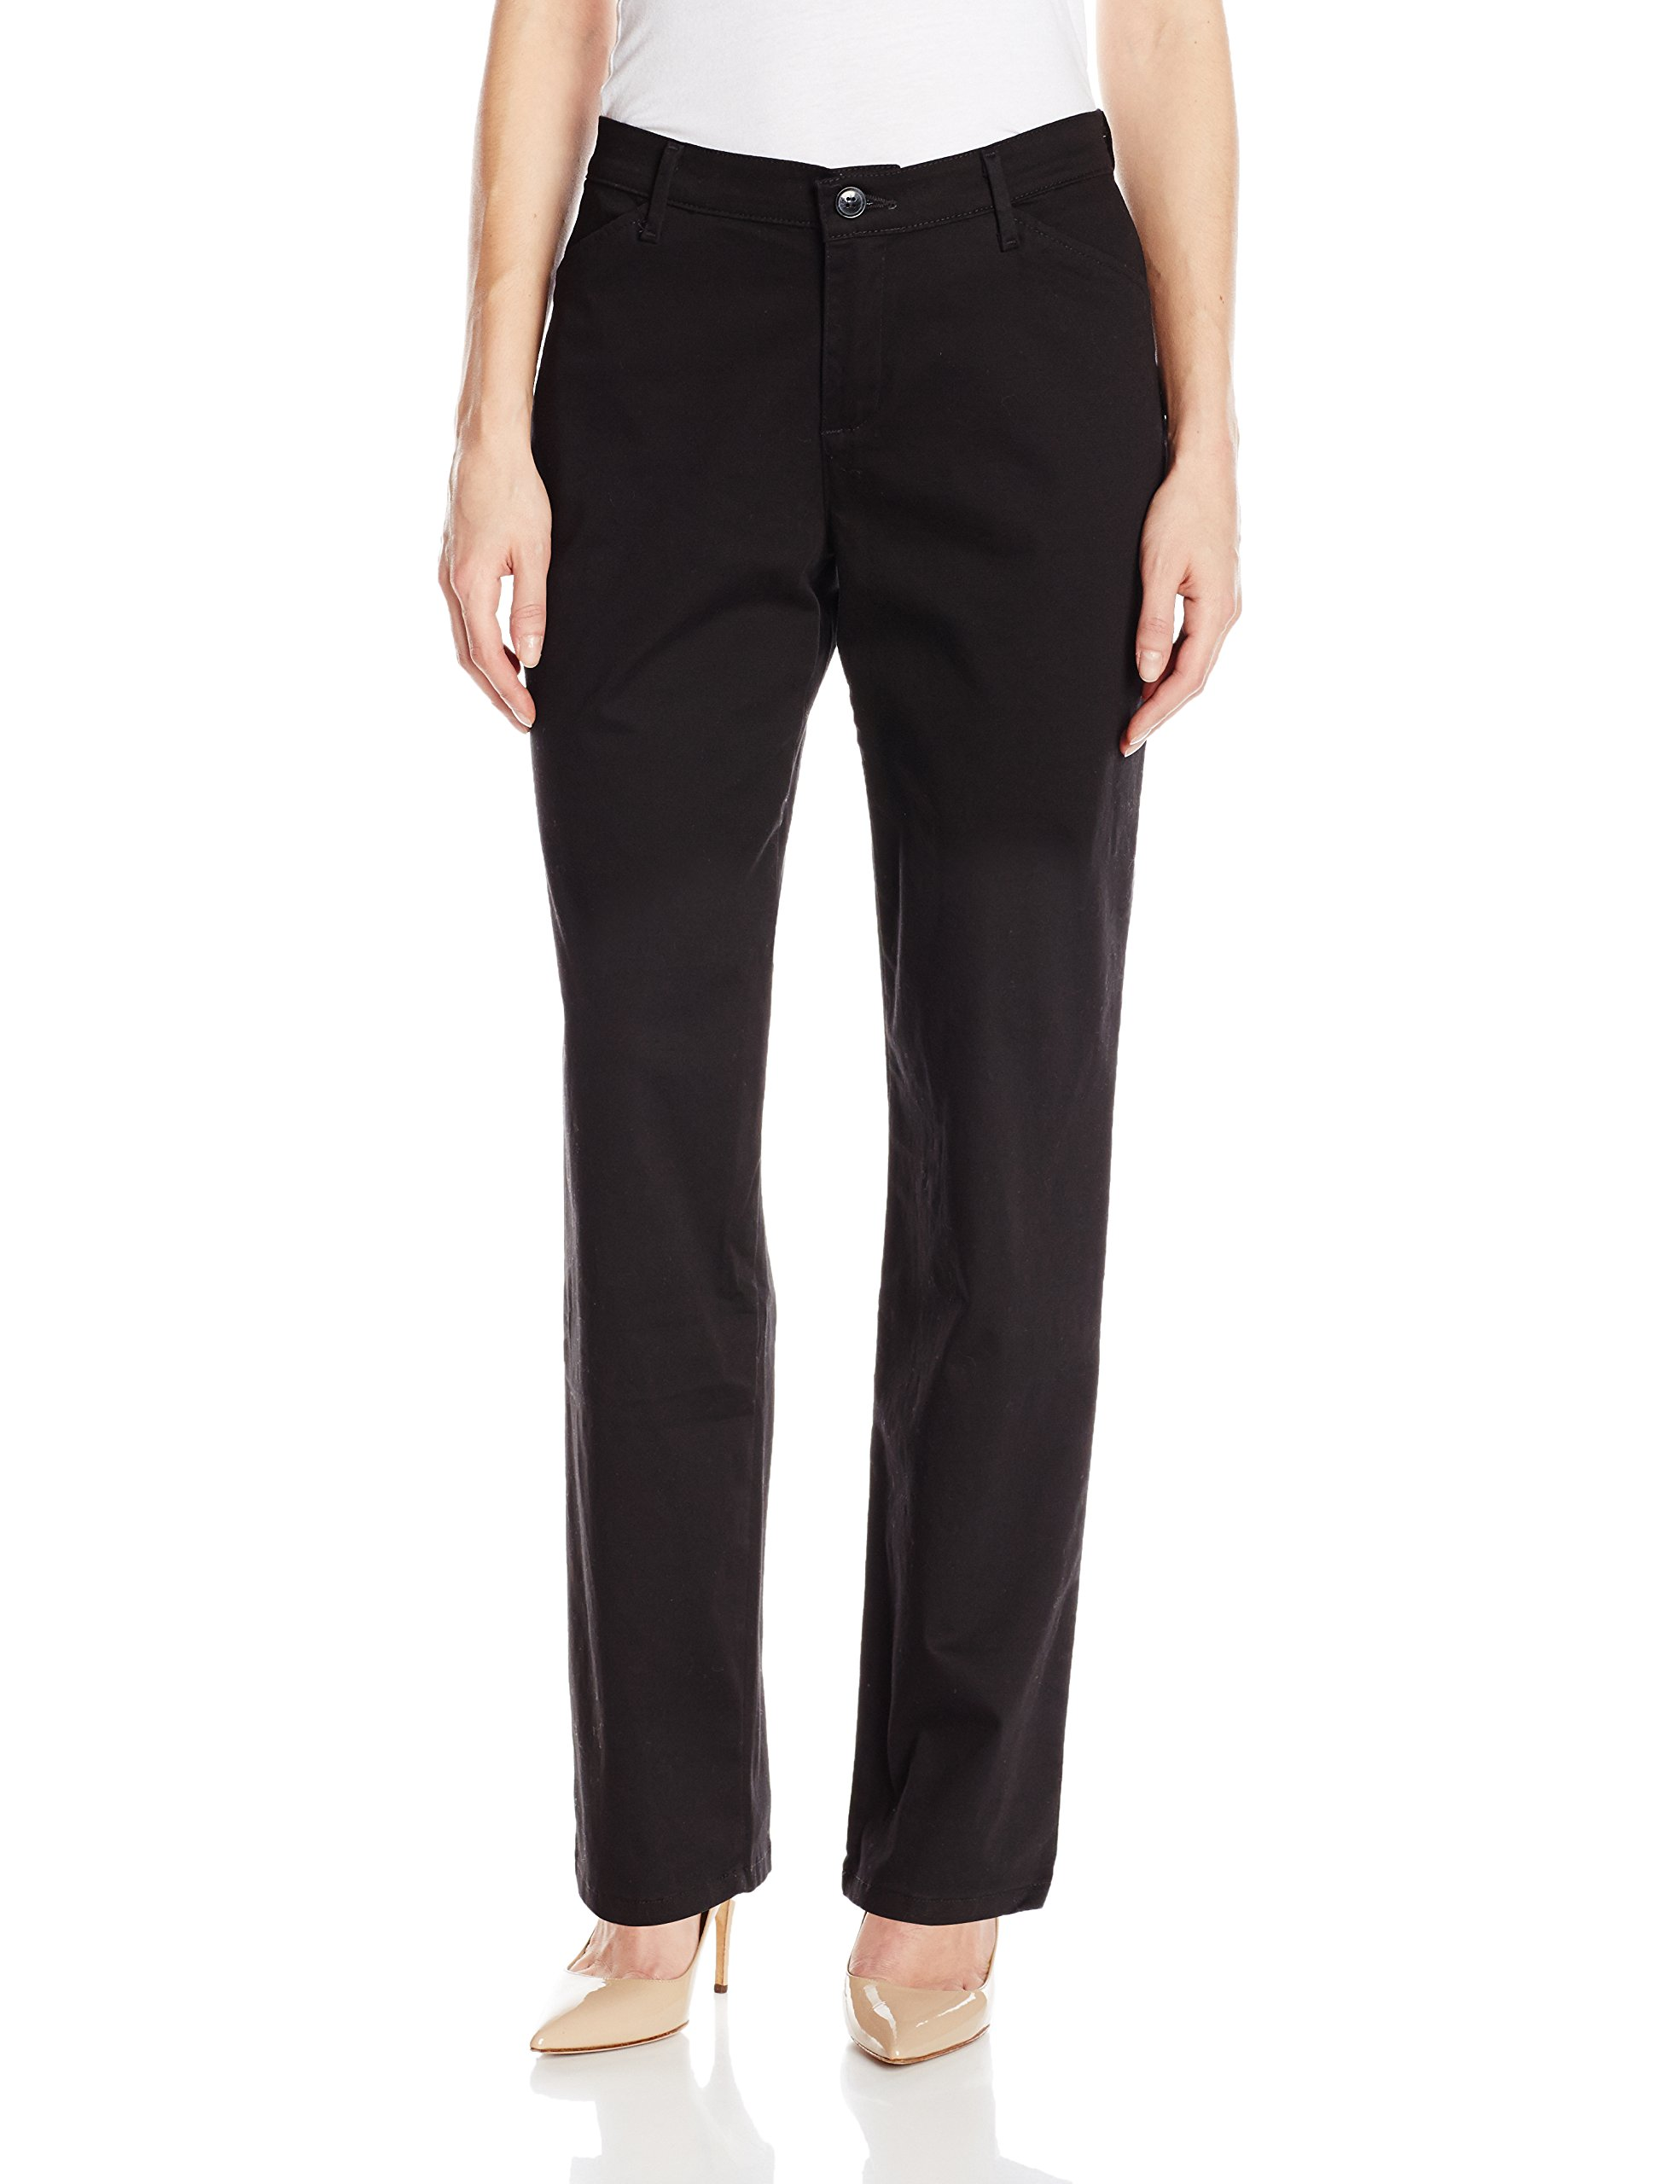 LEE Women's Relaxed Fit All Day Straight Leg Pant, Black, 14 Medium